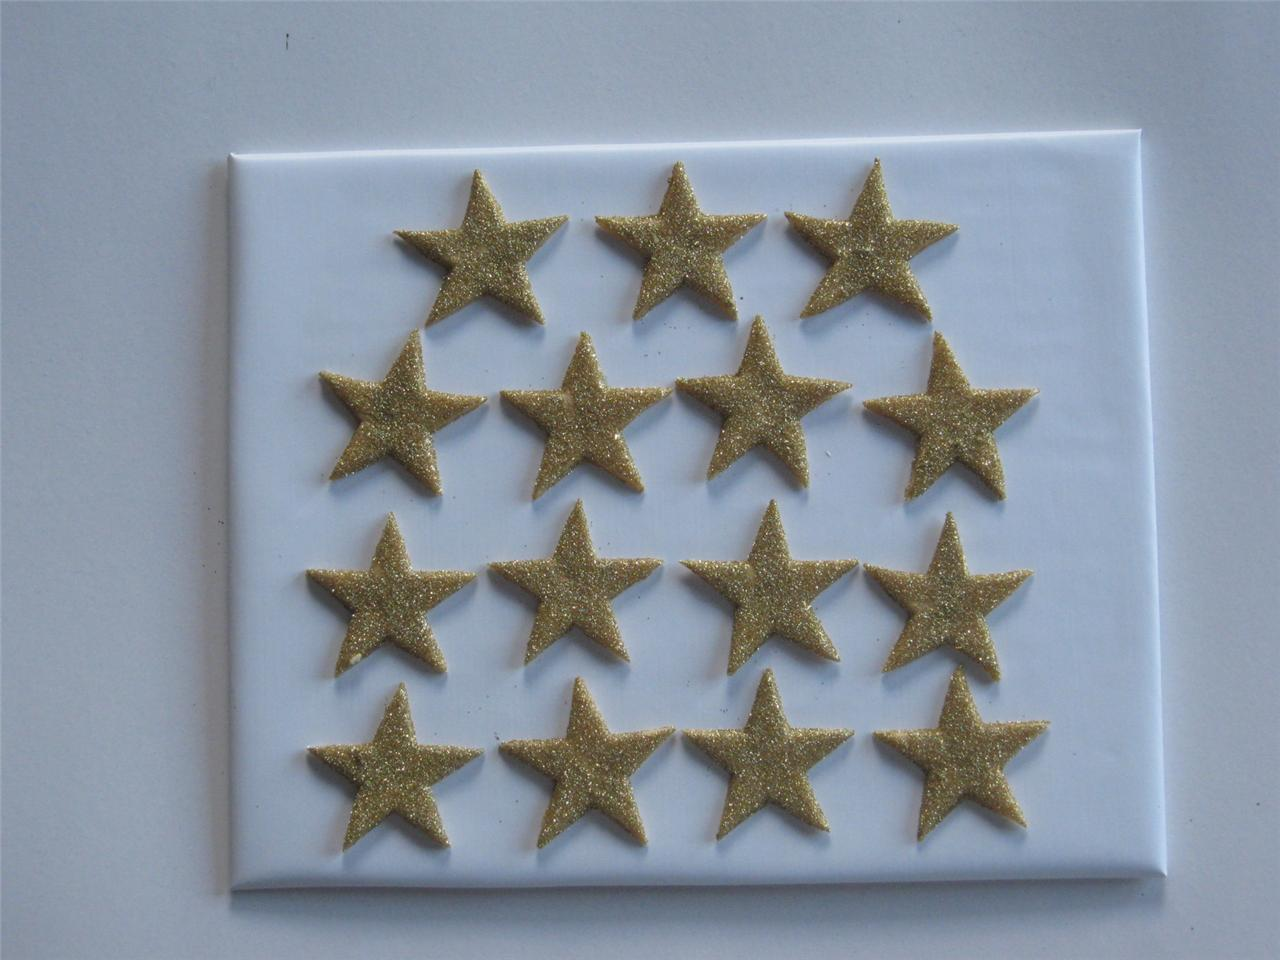 Edible Cake Decorations Stars : 15xEDIBLE GLITTER STARS. CAKE DECORATIONS - VARIOUS ...